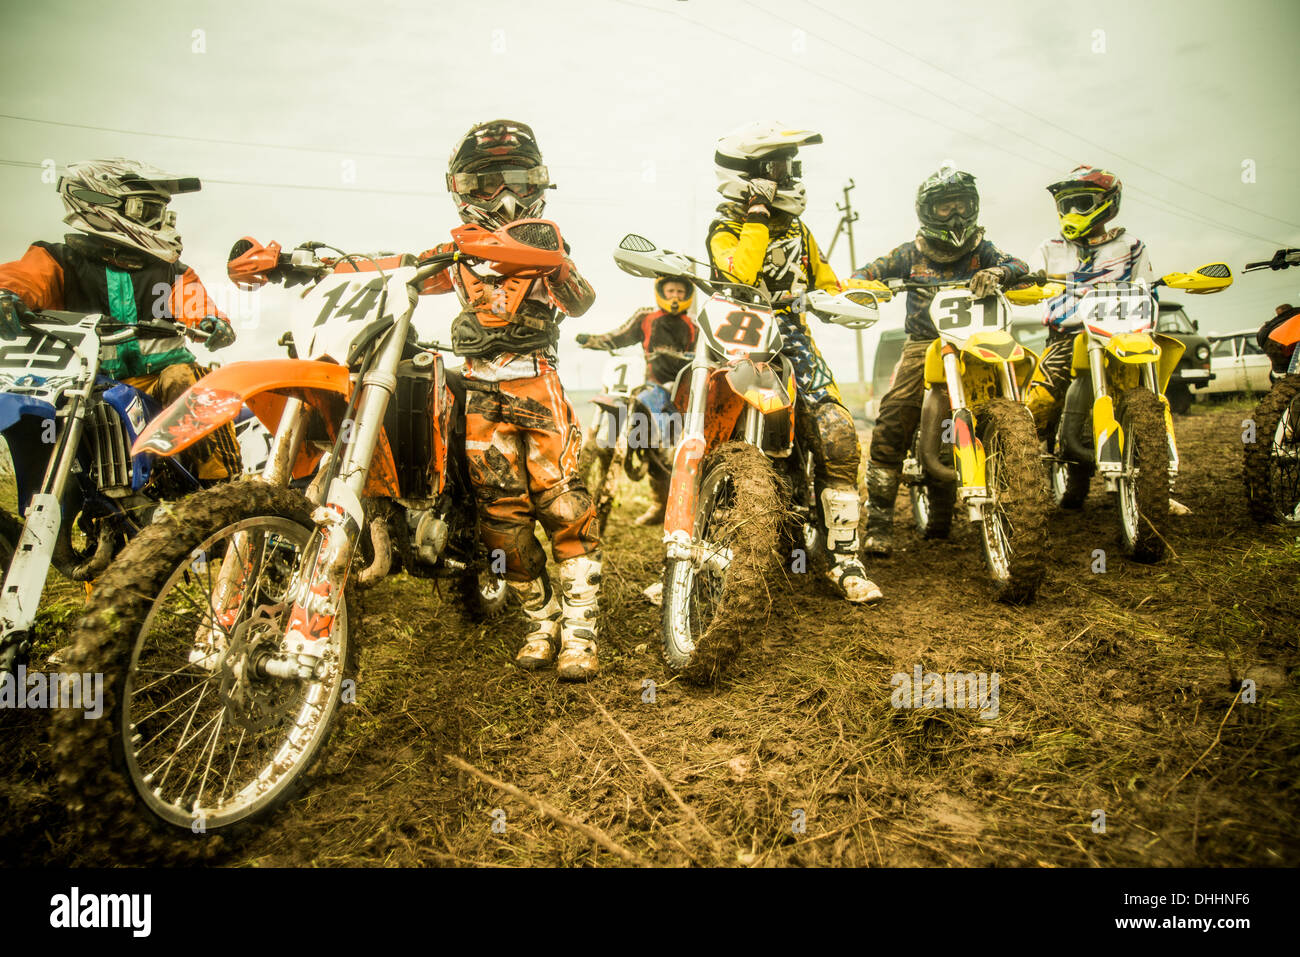 Group of boys on motorcycles at motocross - Stock Image